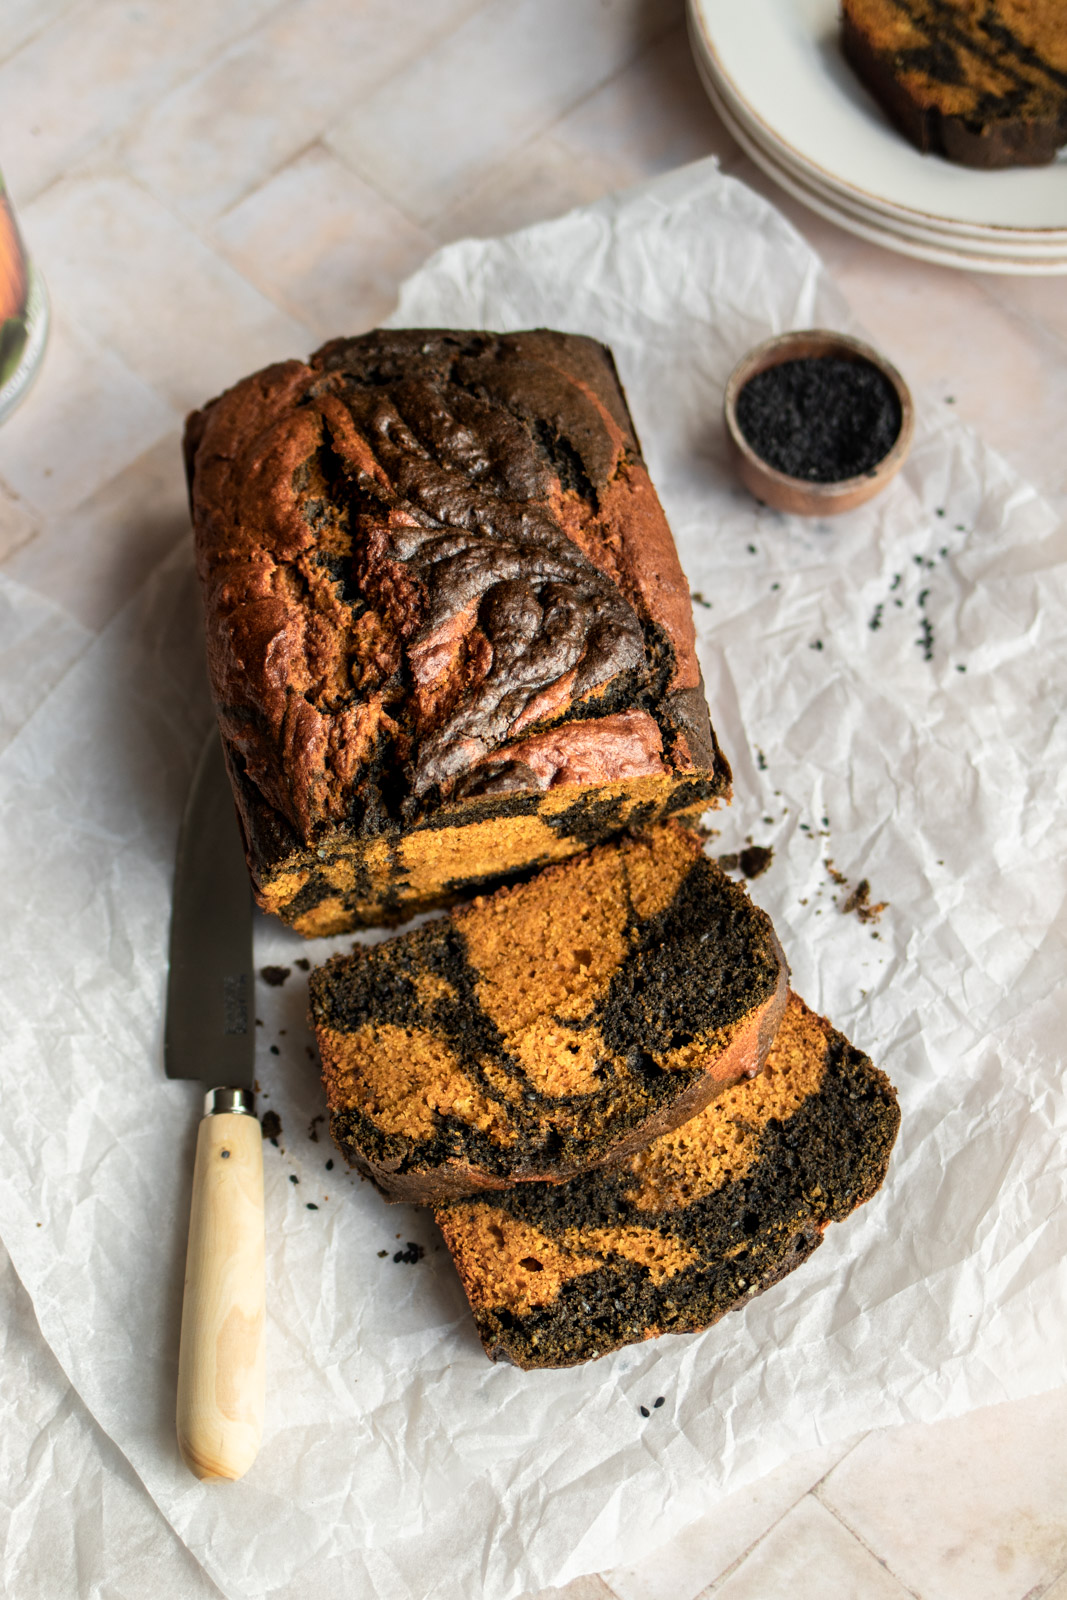 A loaf of black sesame swirl pumpkin bread sliced open and sitting on baking paper with a wooden knife and a bowl of black sesame seeds